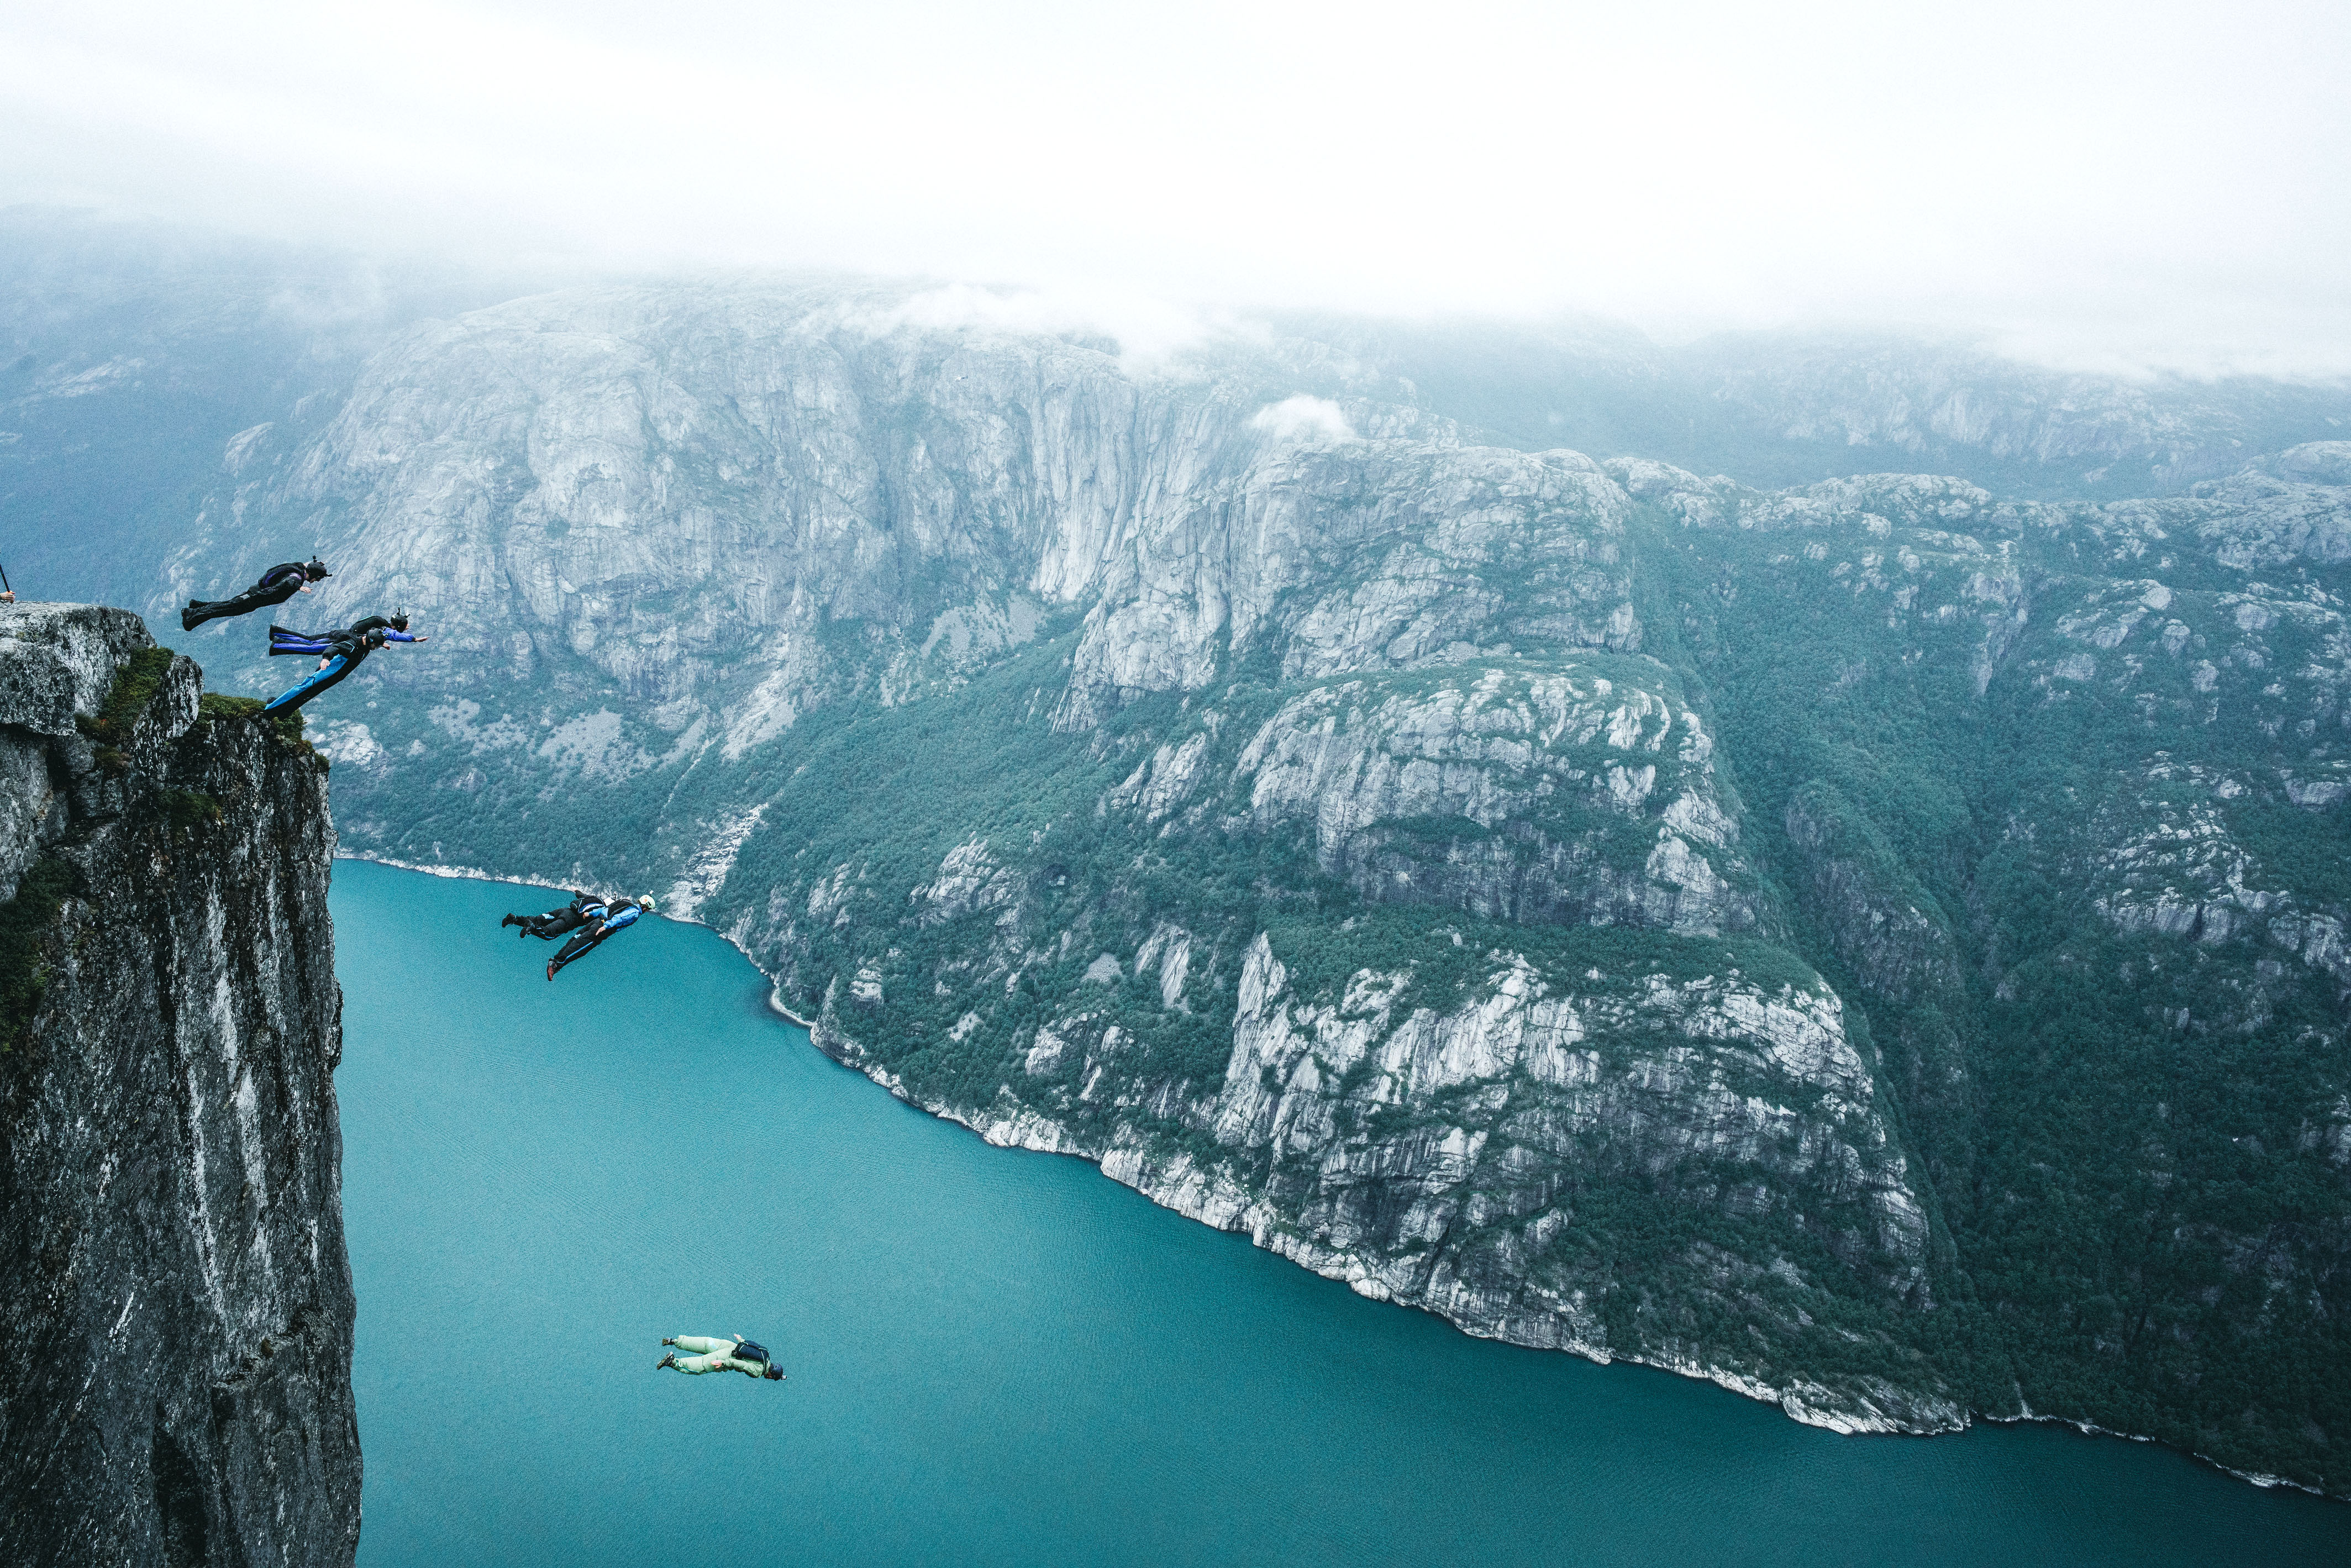 Geronimo base jumpers launch themselves from 1100m high cliff caters news agency - Highest cliff dive ever ...